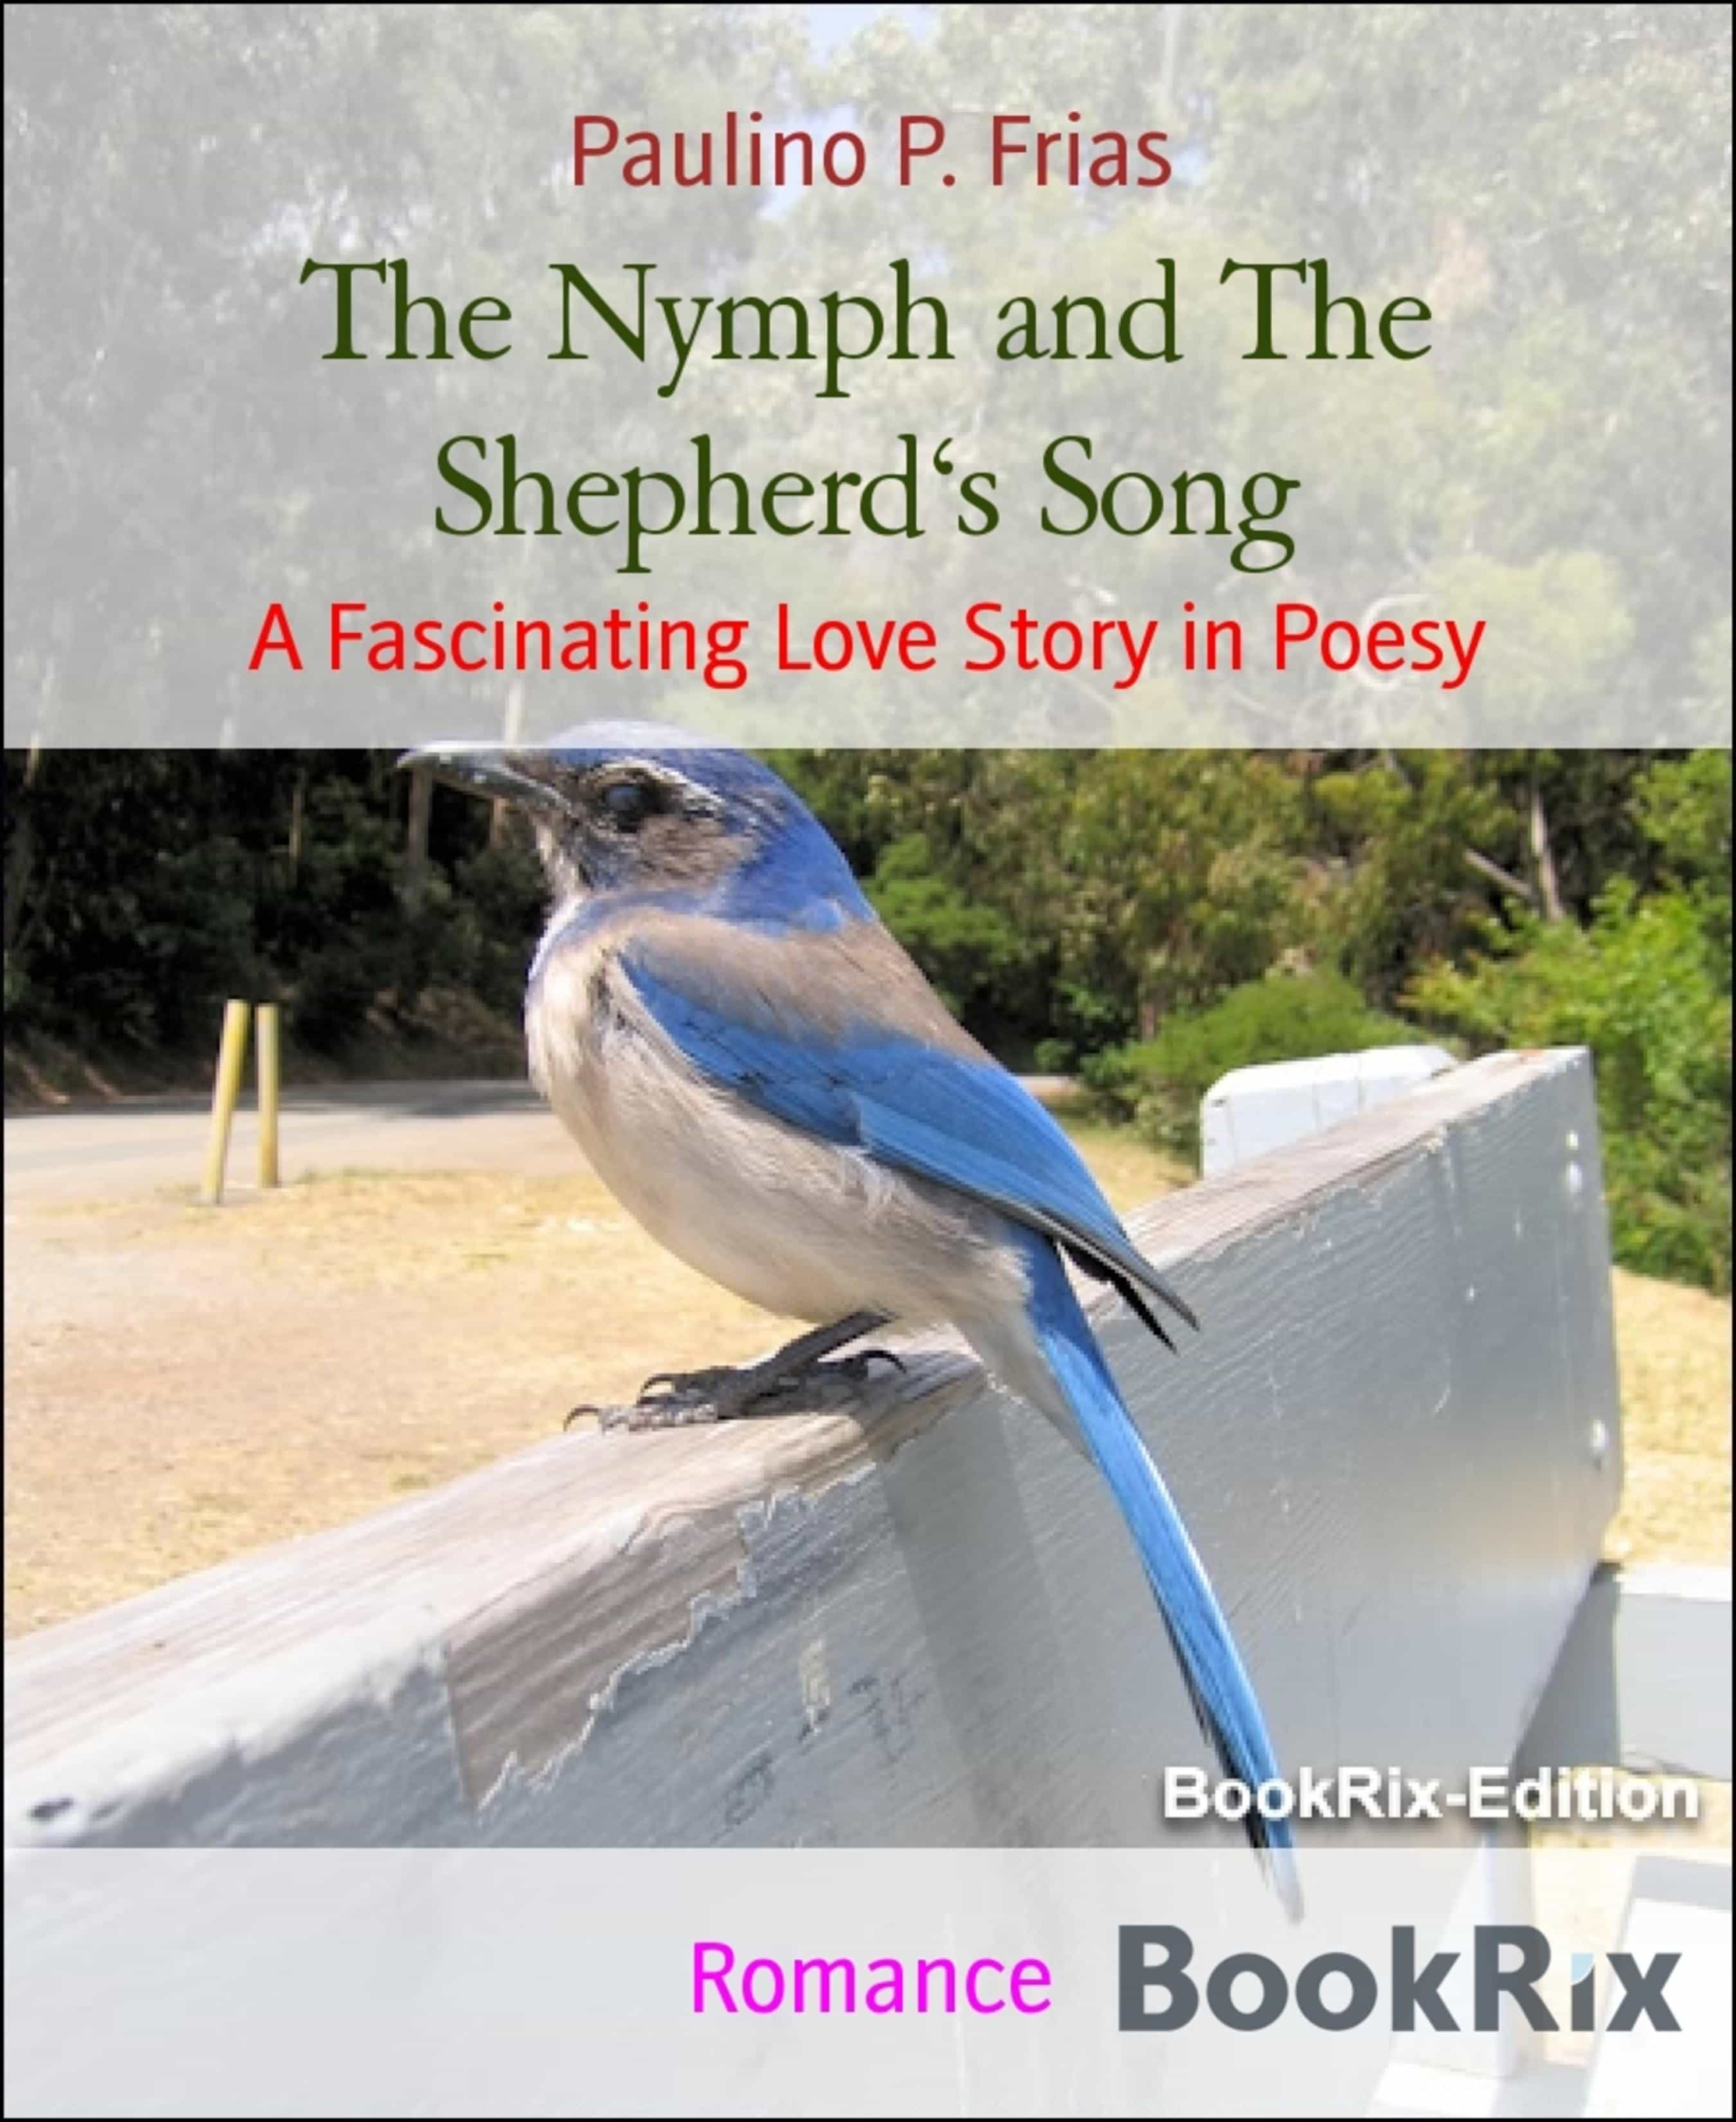 THE NYMPH AND THE SHEPHERD'S SONG